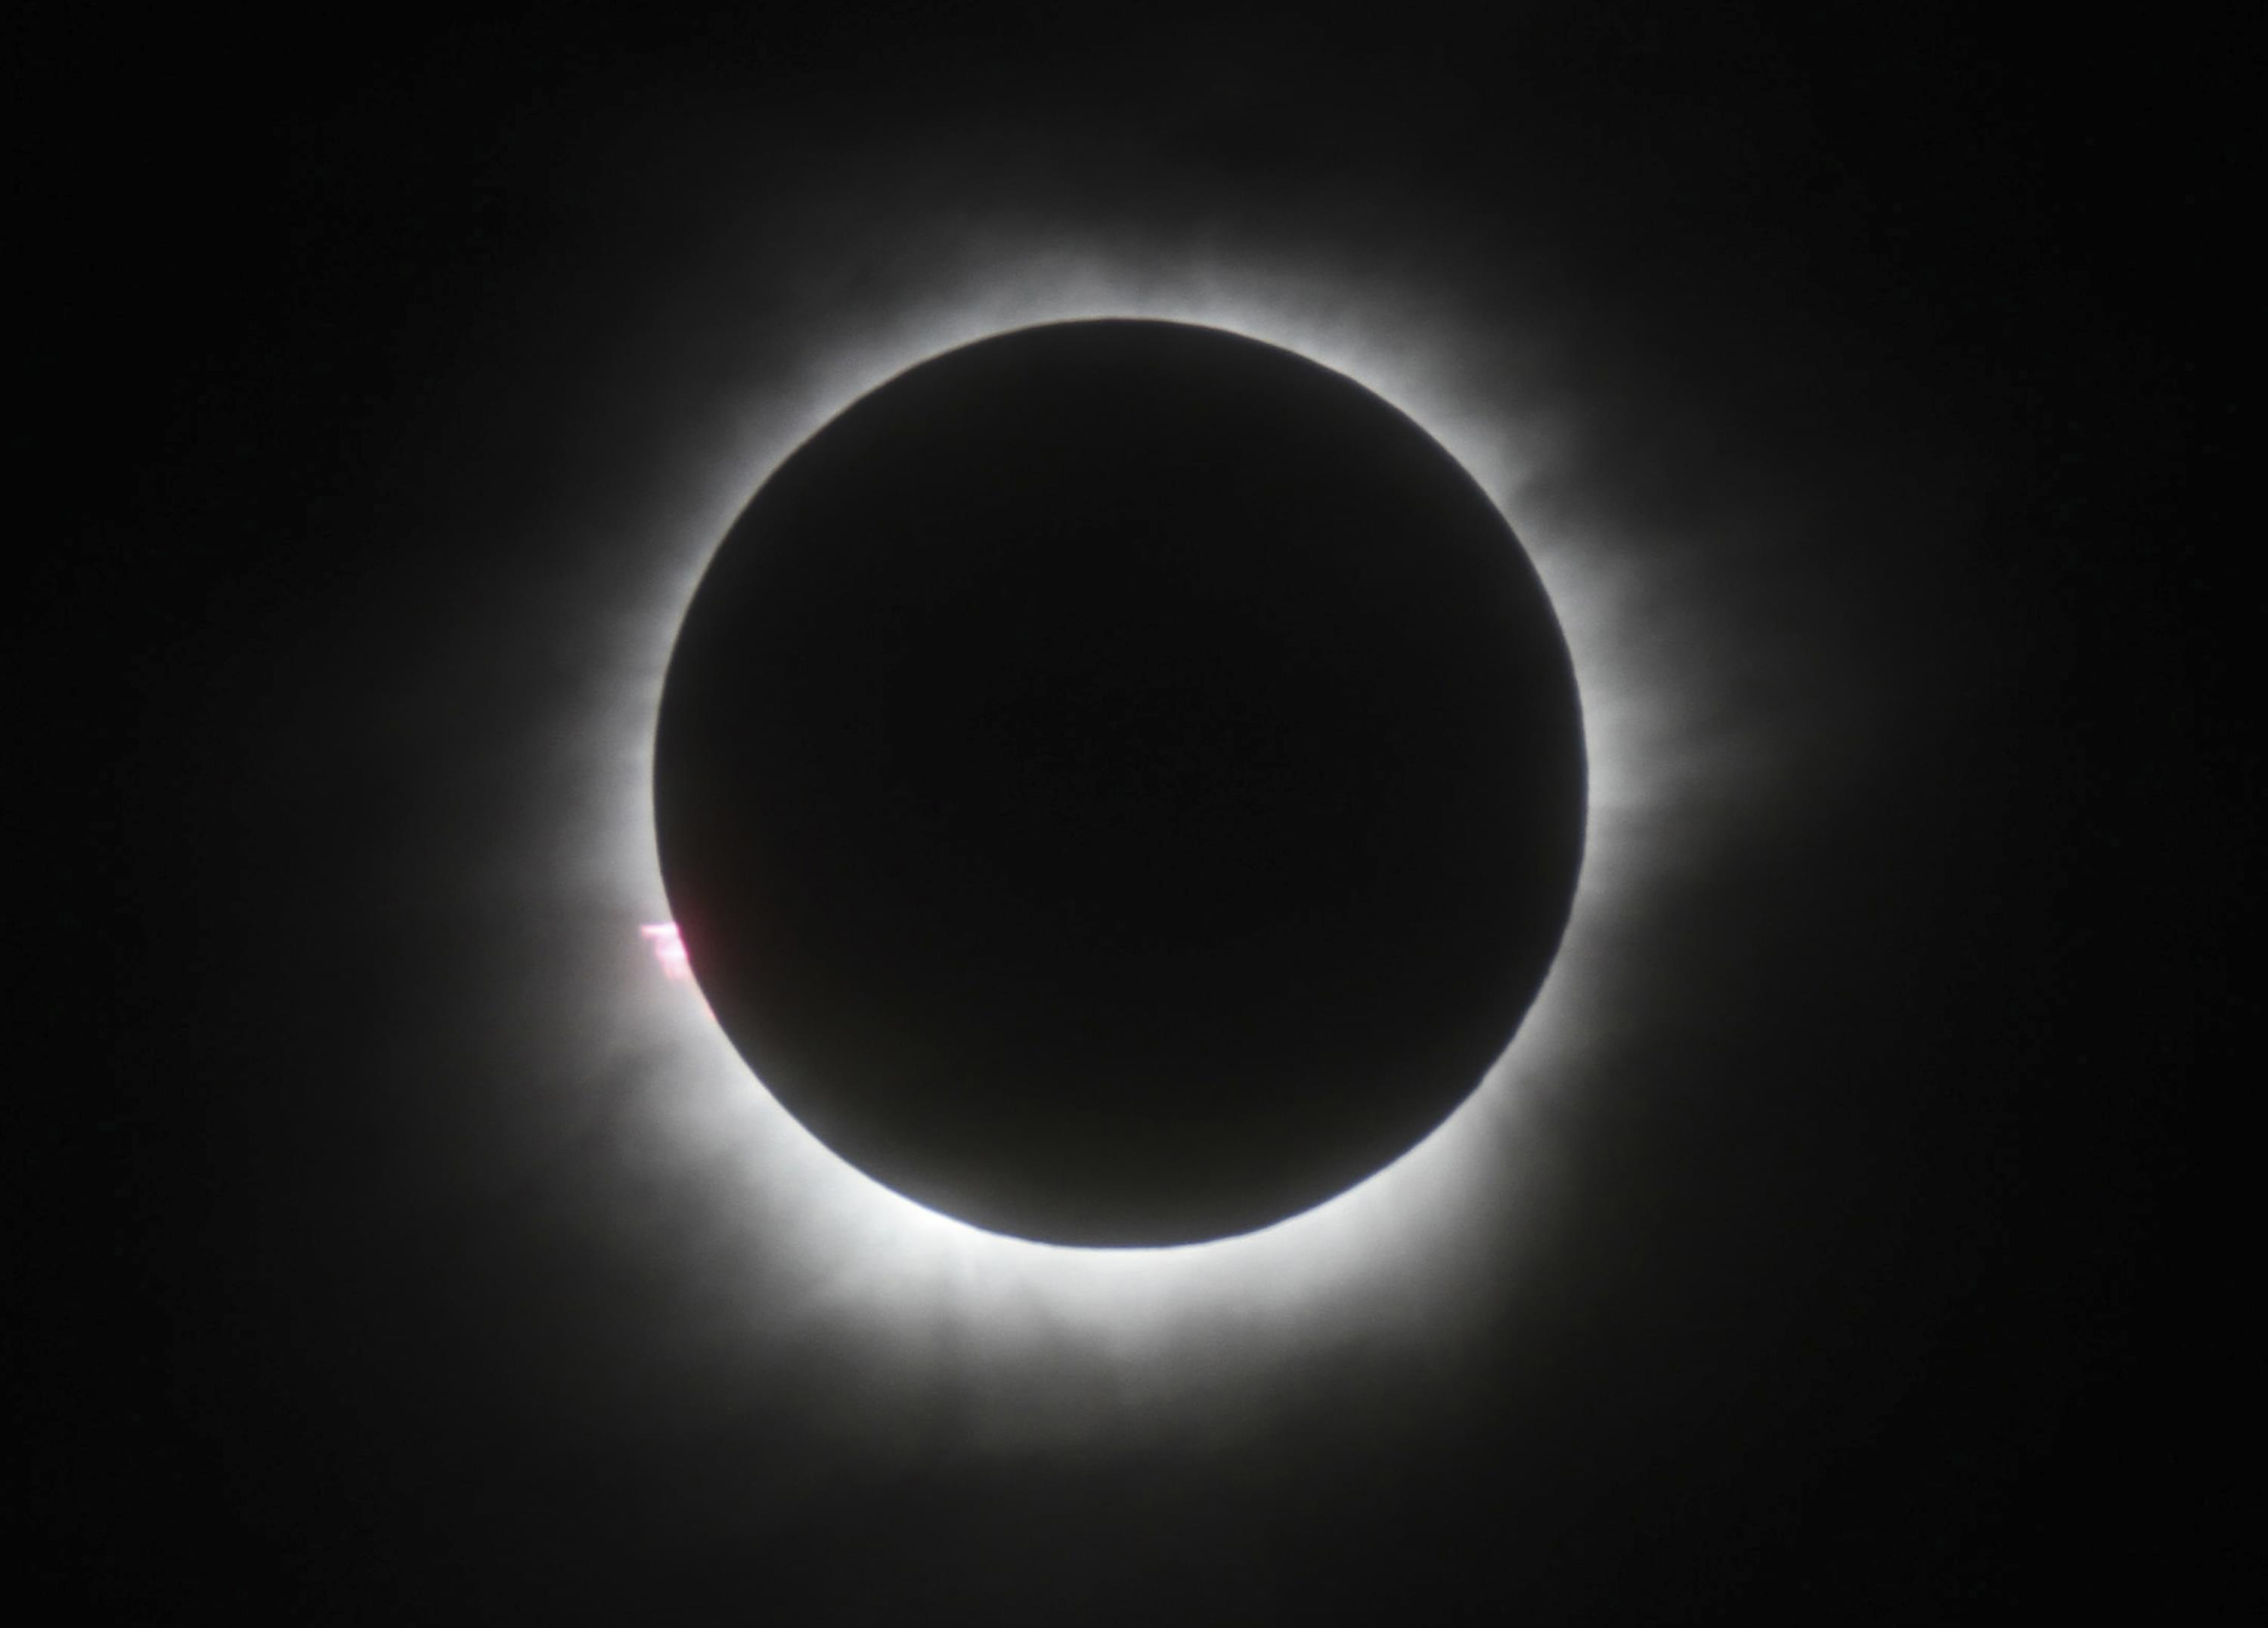 Several small cities in southern Illinois are preparing for visitors to come and see a total solar eclipse on Aug. 21. This will be the first in the mainland U.S. in almost four decades.